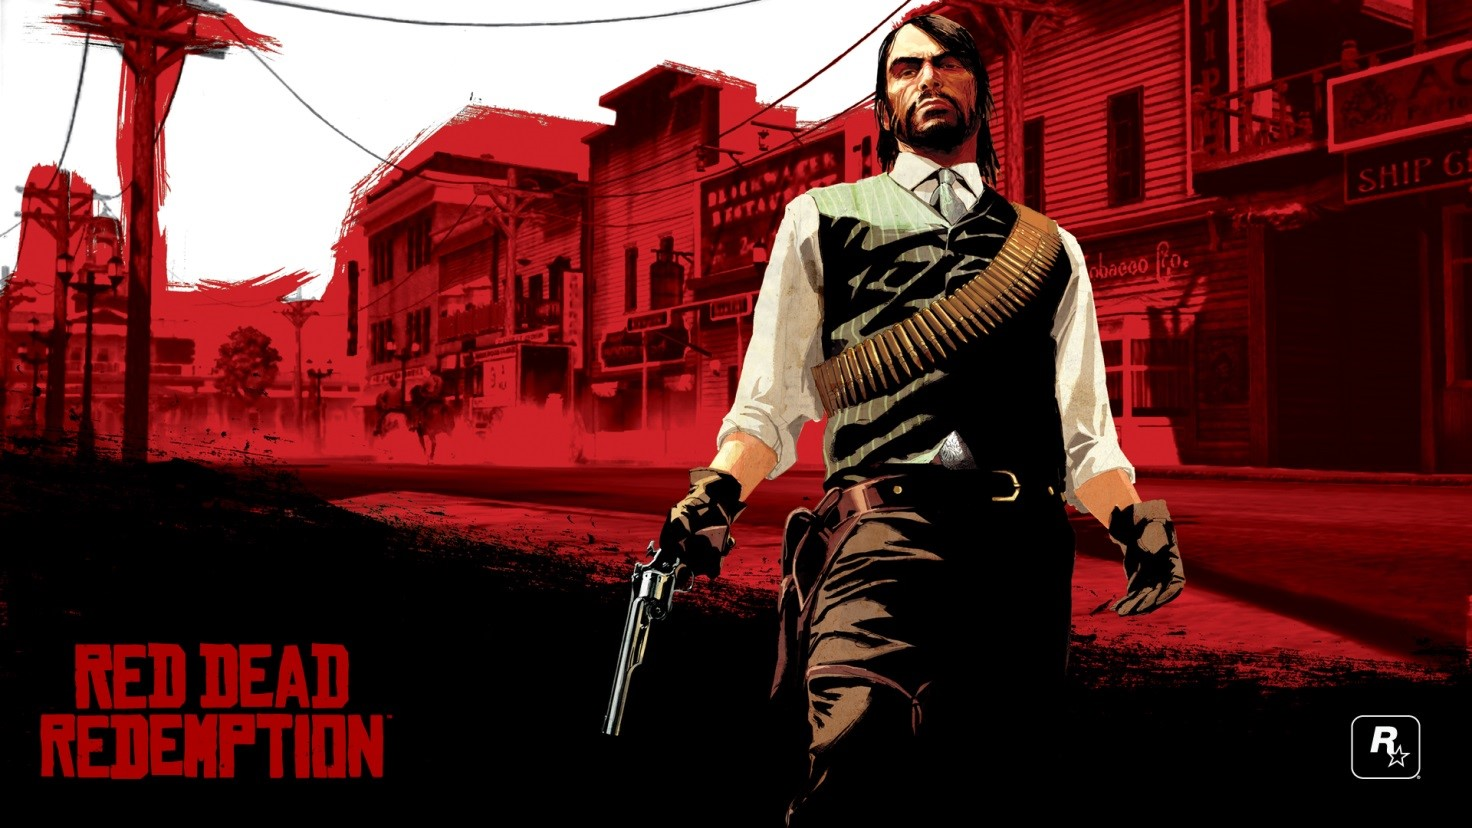 №2. Red Dead Redemption